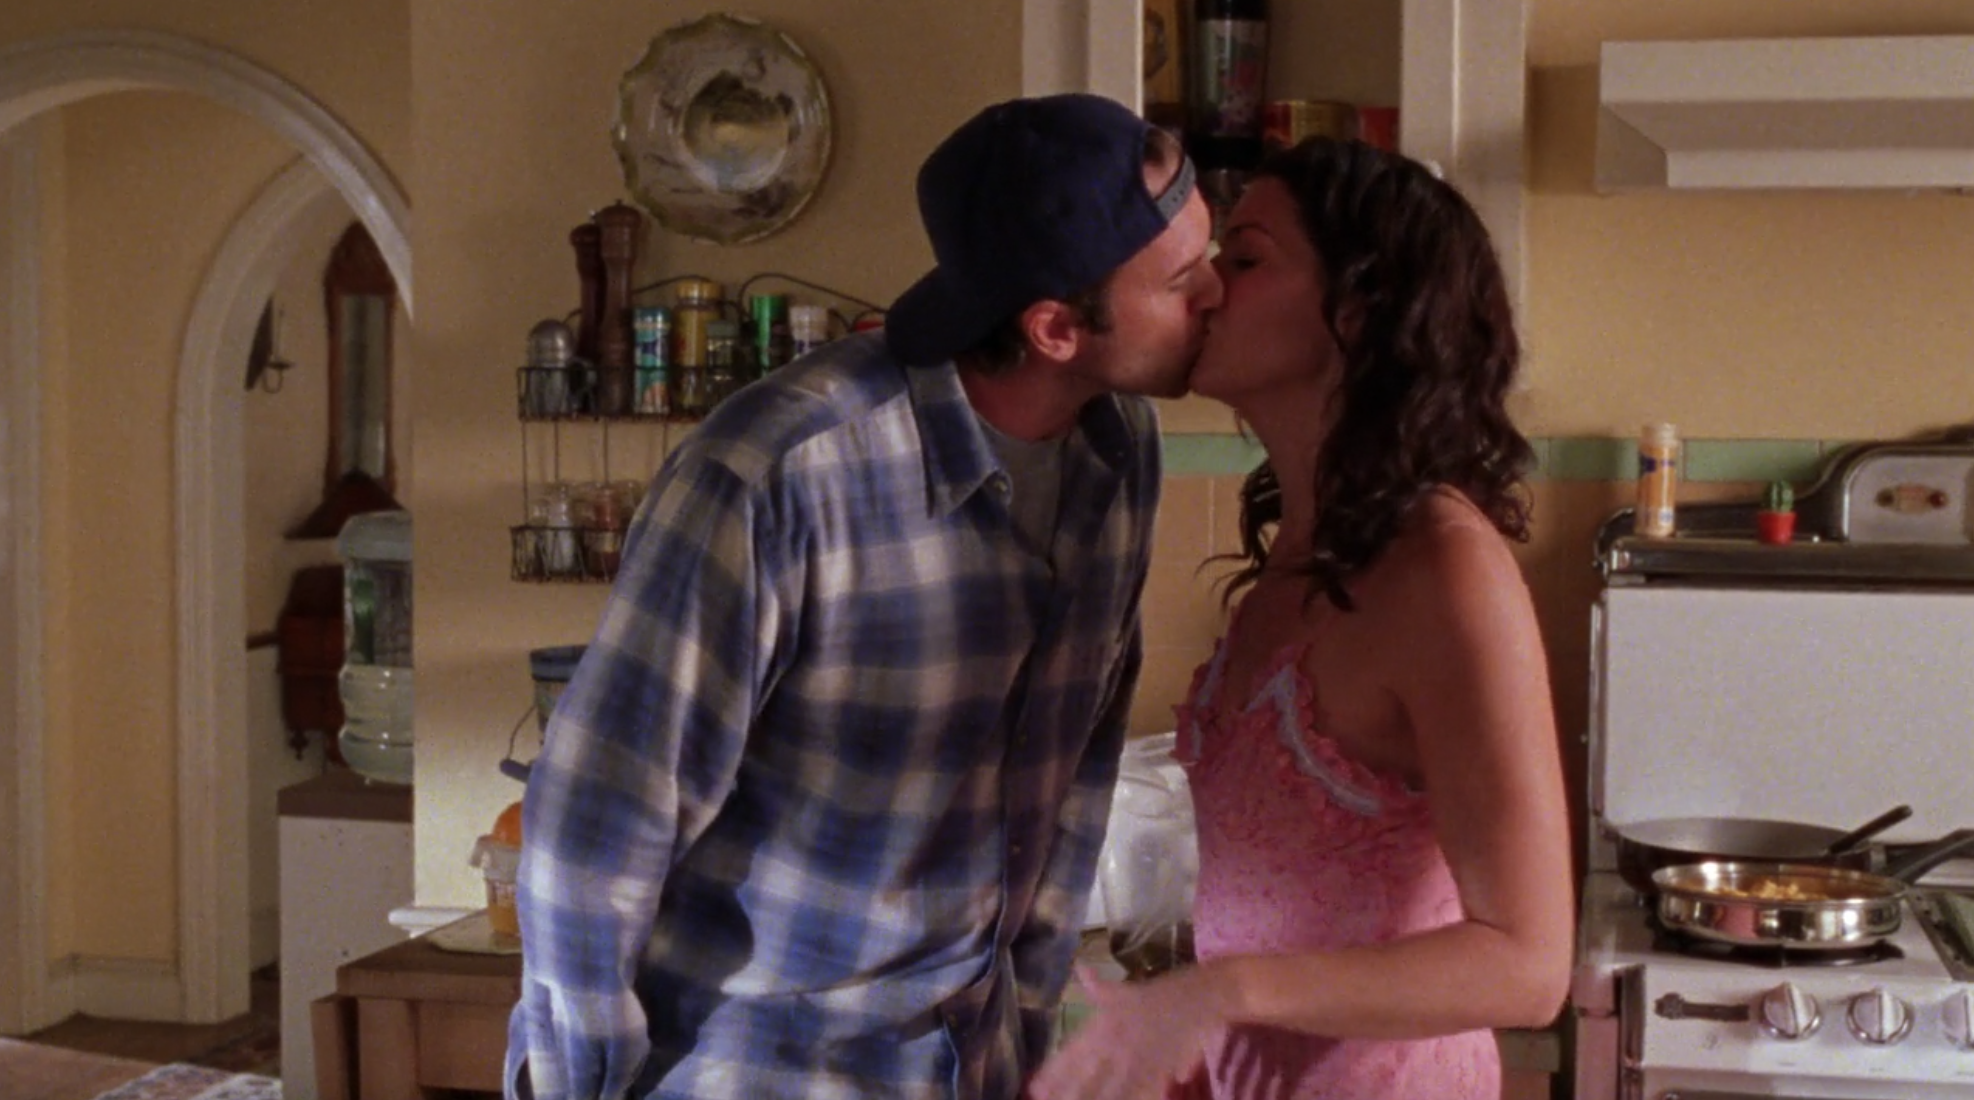 Lorelai-and-Luke-Kiss-Lazy-Hazy-Crazy-Days-Gilmore-Girls-1